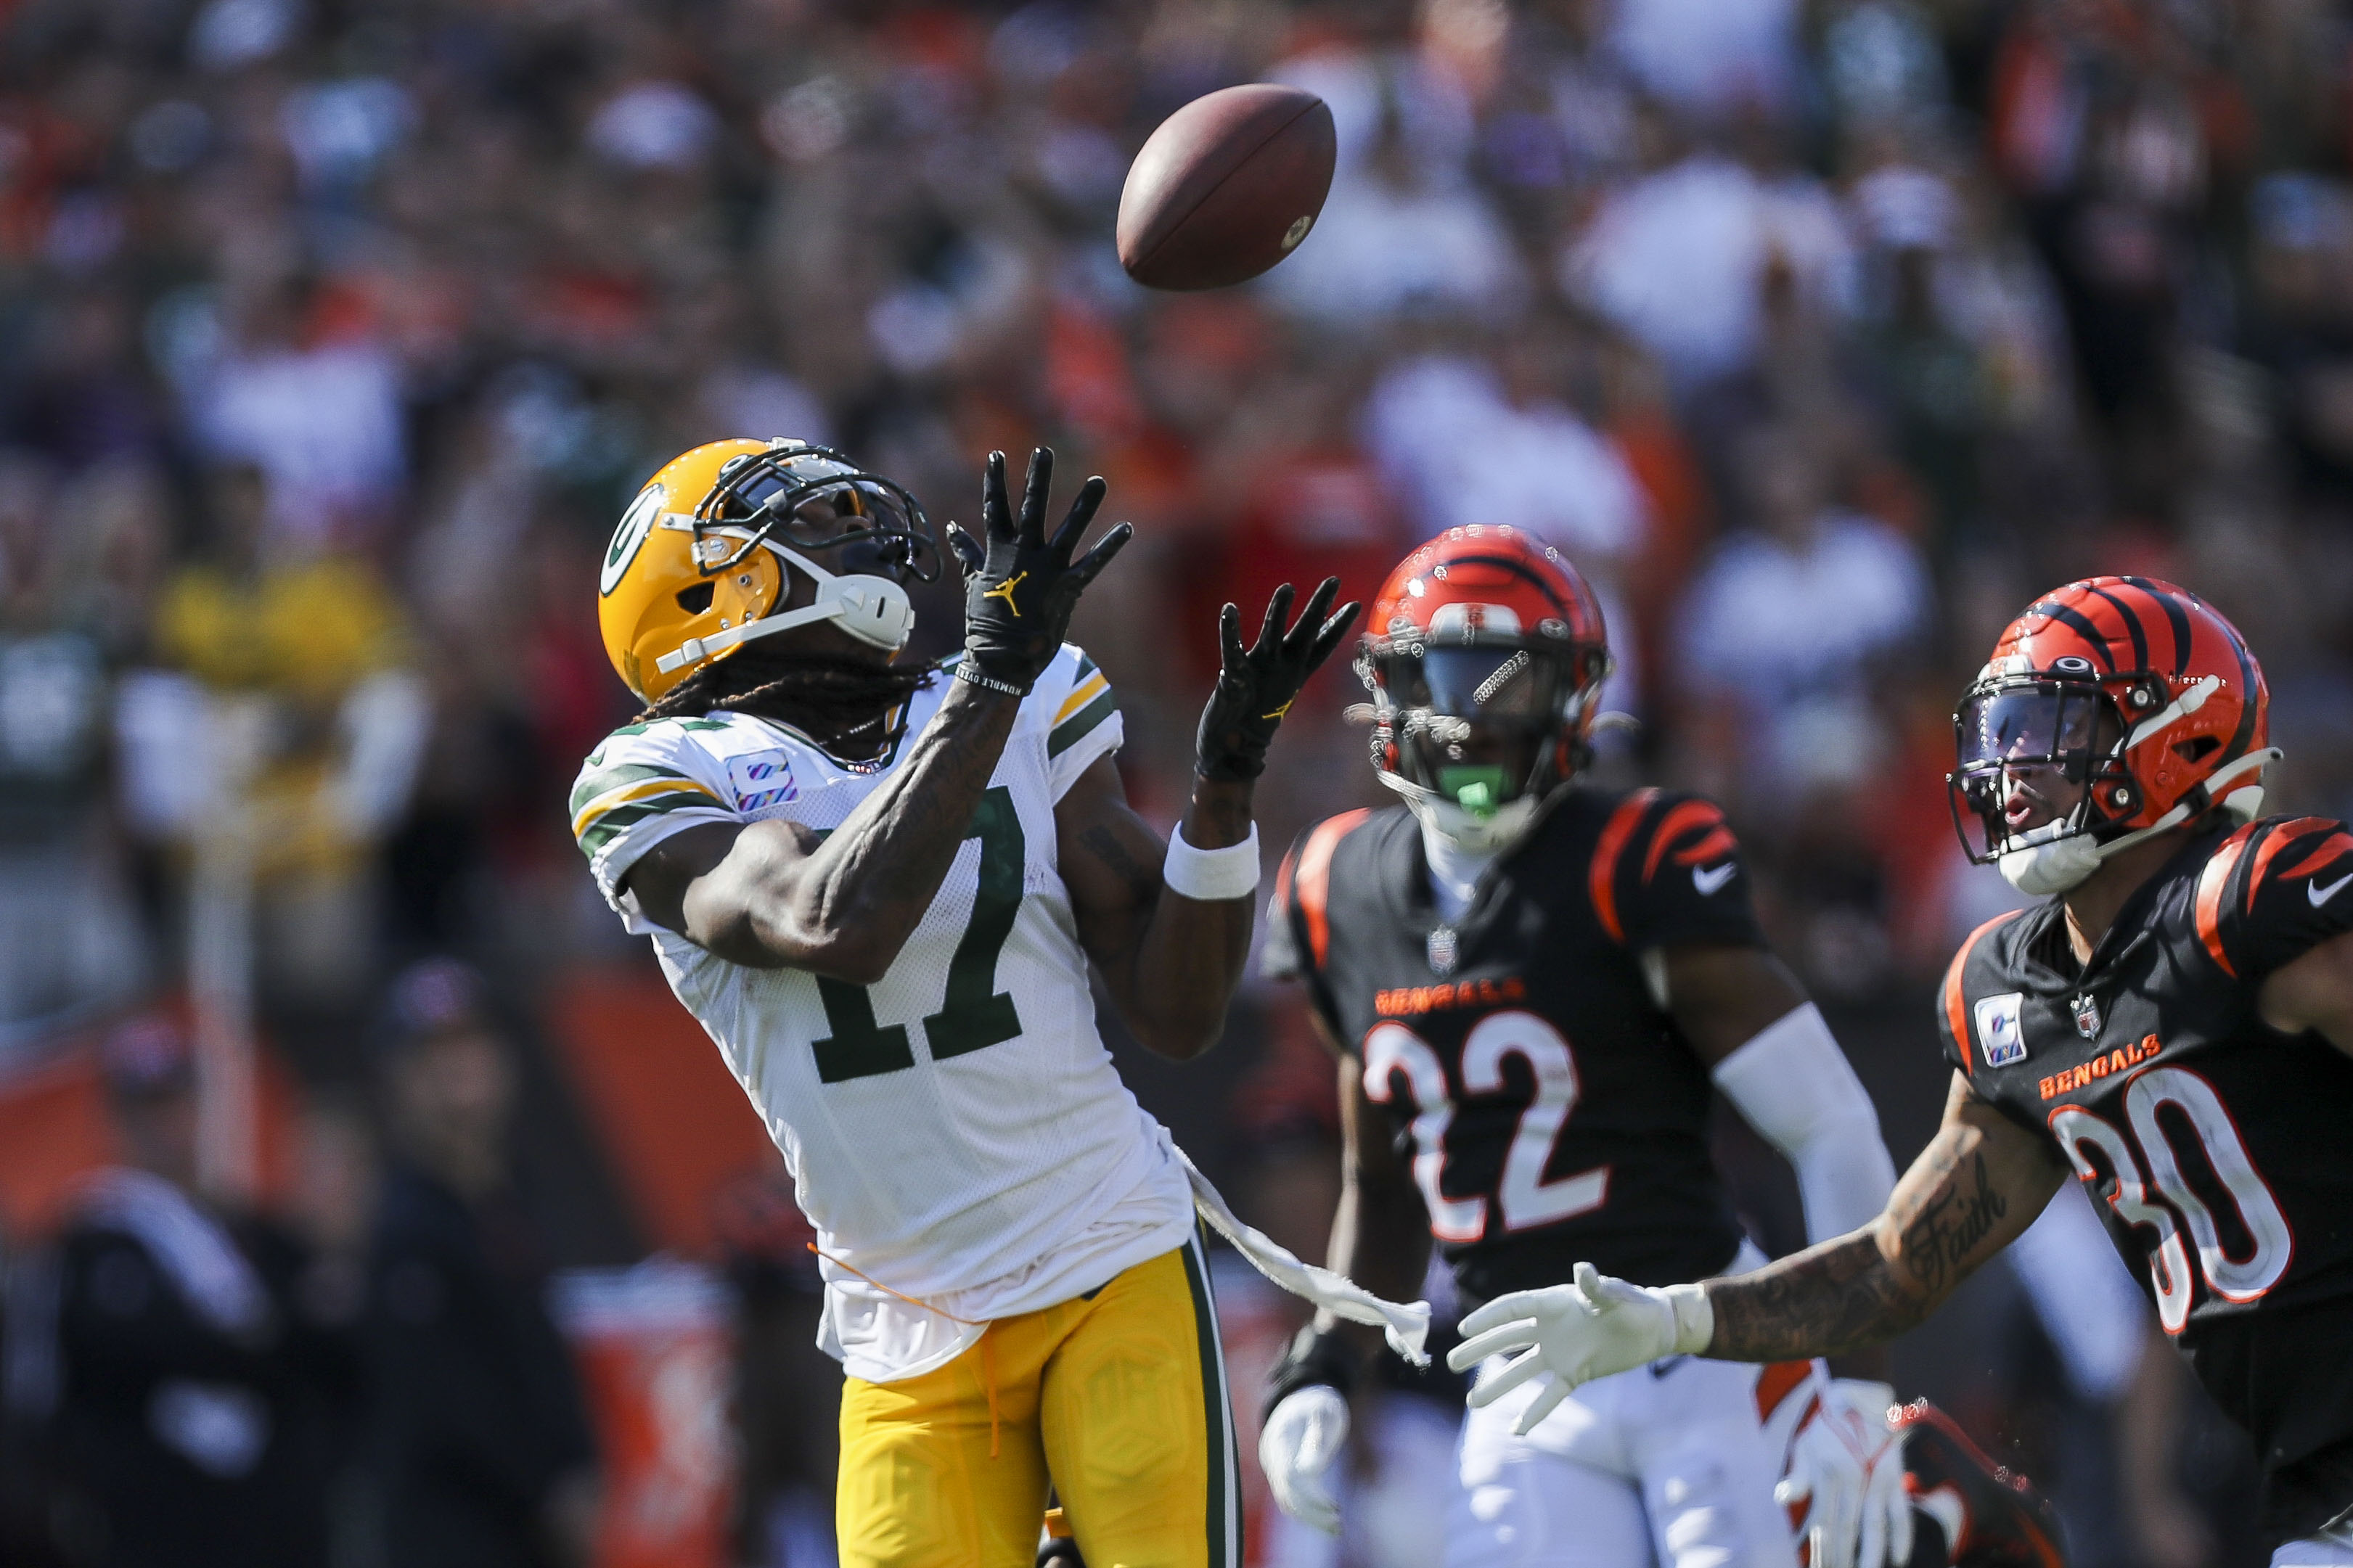 Green Bay Packers wide receiver Davante Adams catches a pass against Cincinnati Bengals safety Jessie Bates III in the second half at Paul Brown Stadium.